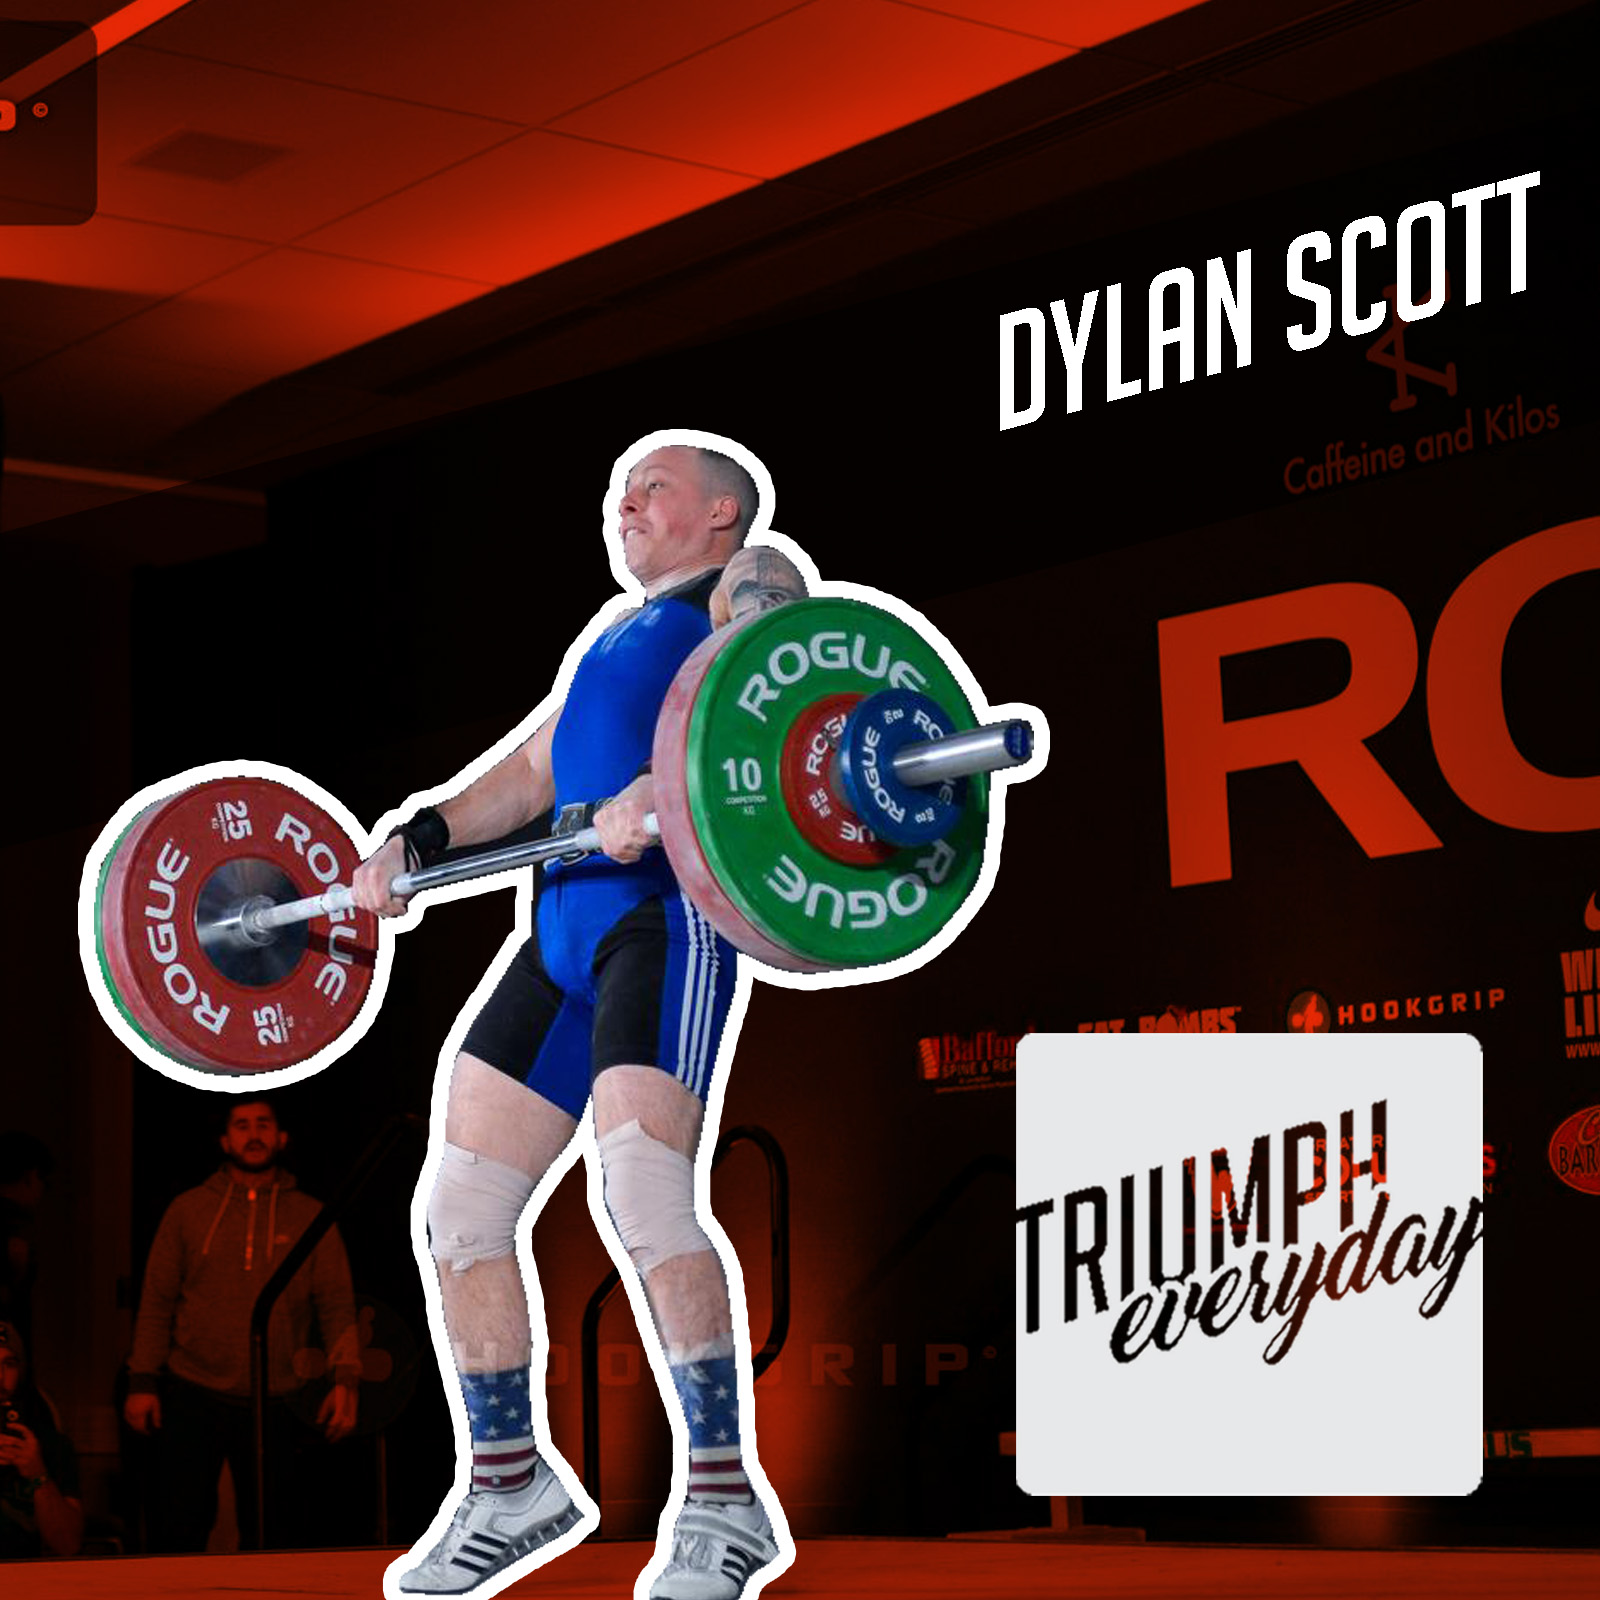 Triumph Everyday Dylanscott Soundcloud